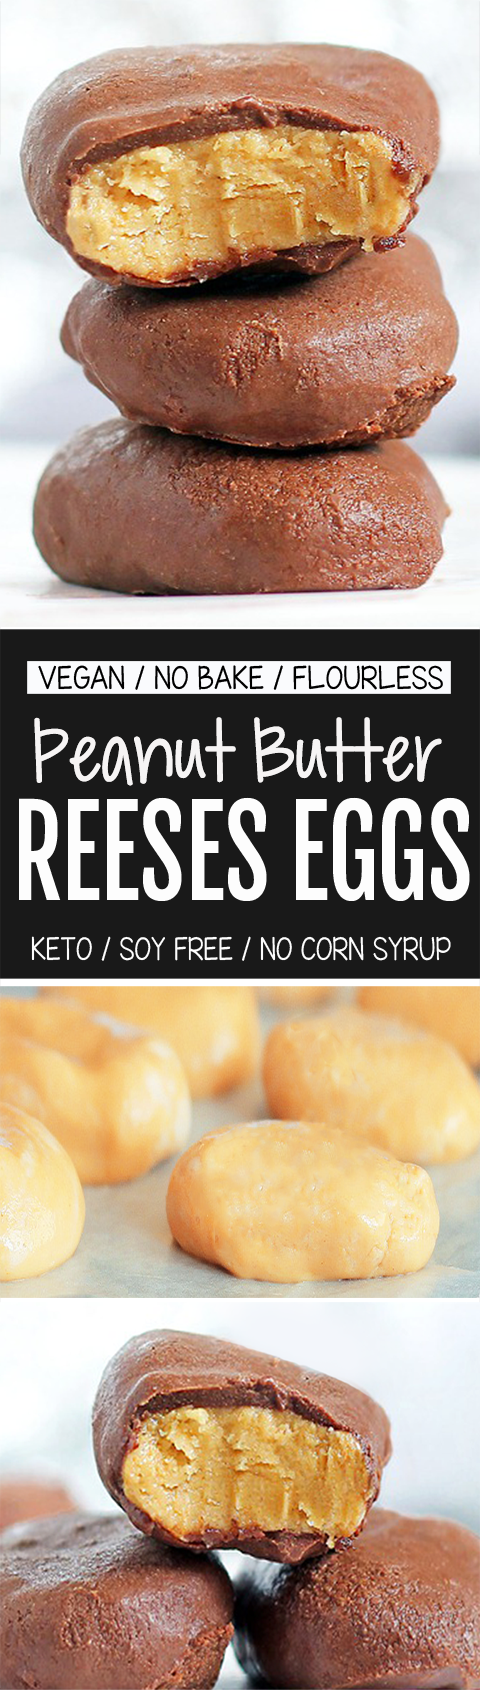 No Bake Reeses Peanut Butter Eggs, SO Addictive!